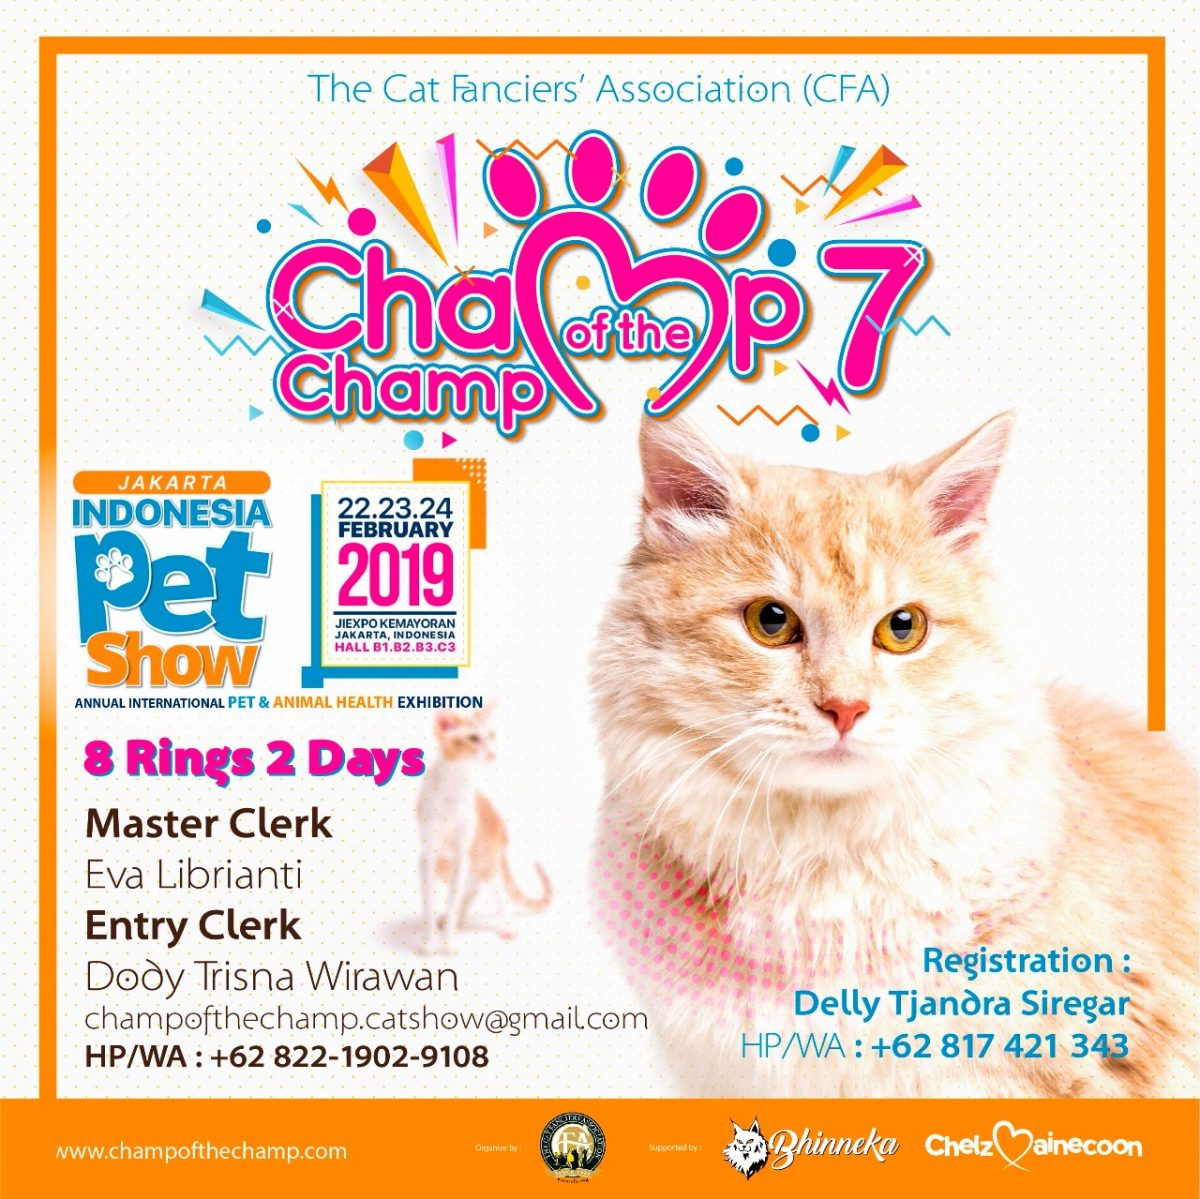 jual mainecoon, cattery mainecoon